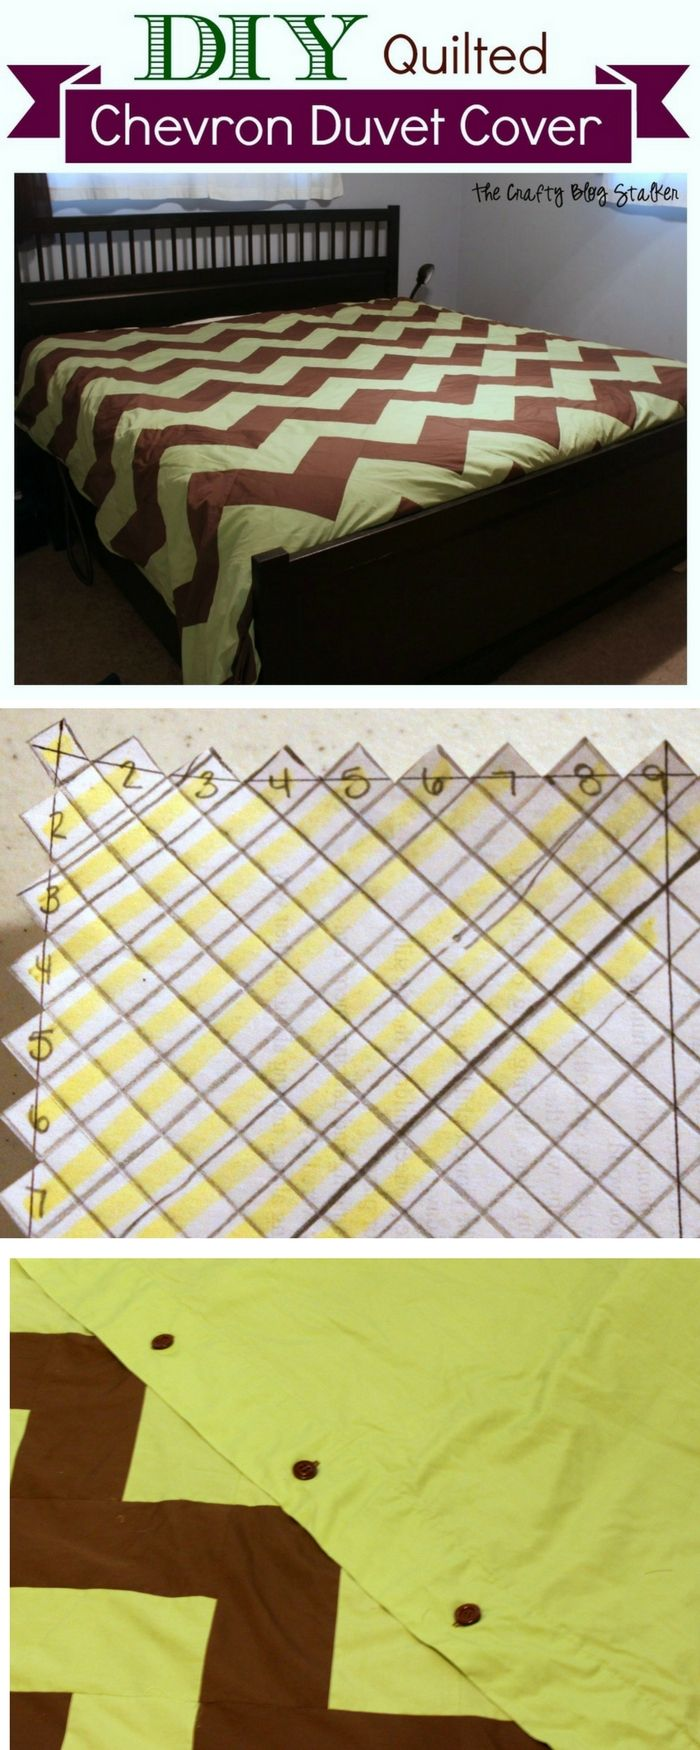 Learn how to sew your own Quilted Chevron Duvet Cover. Make your first quilt with this easy DIY craft tutorial idea for an updated bedroom.